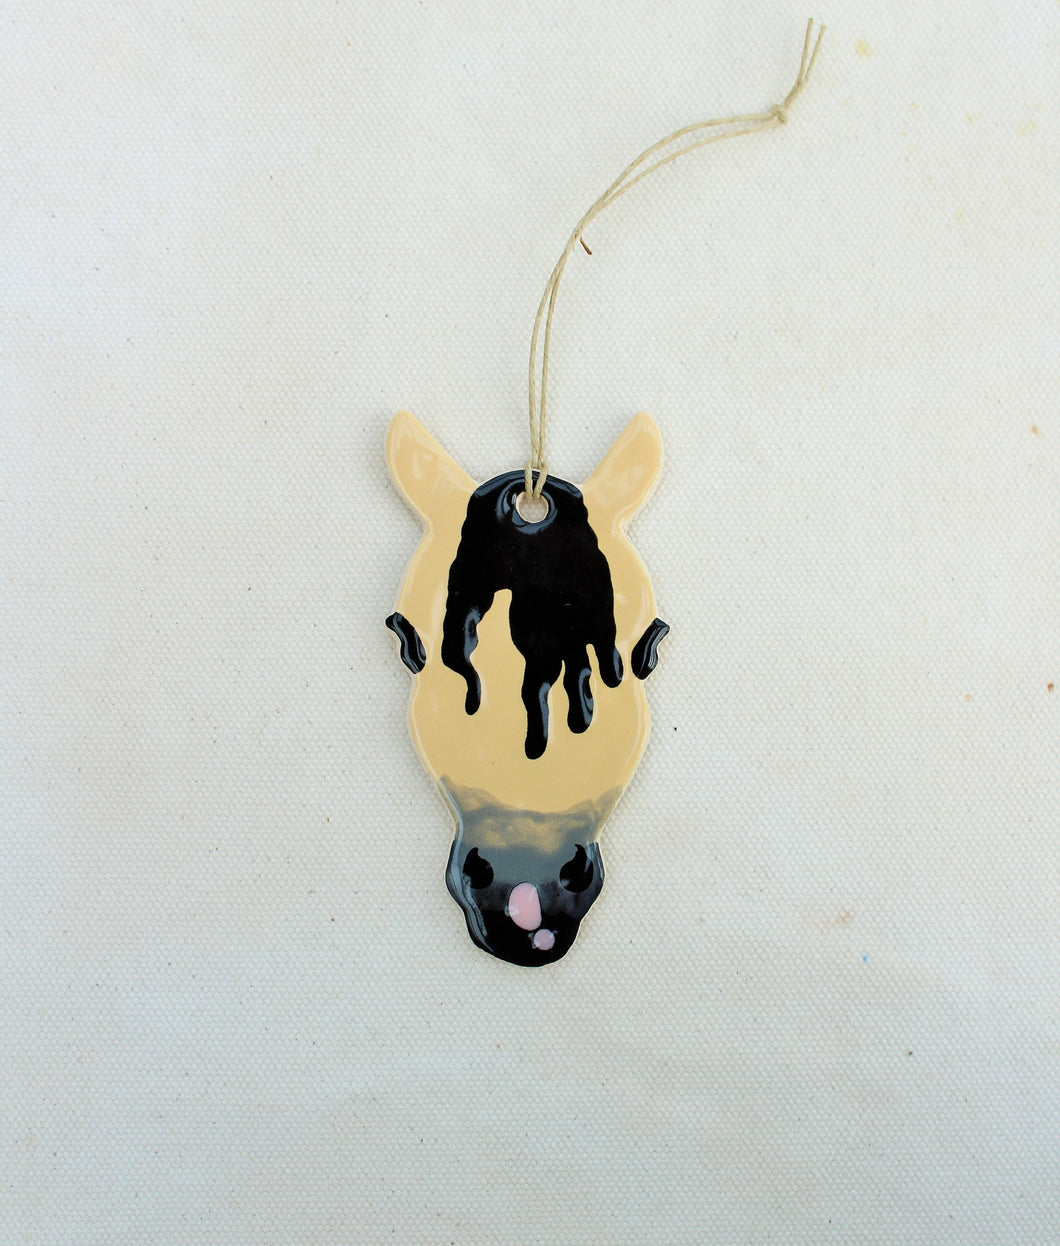 Tan + Black Horse Ornament - Hand Painted Horse Ornament (7)